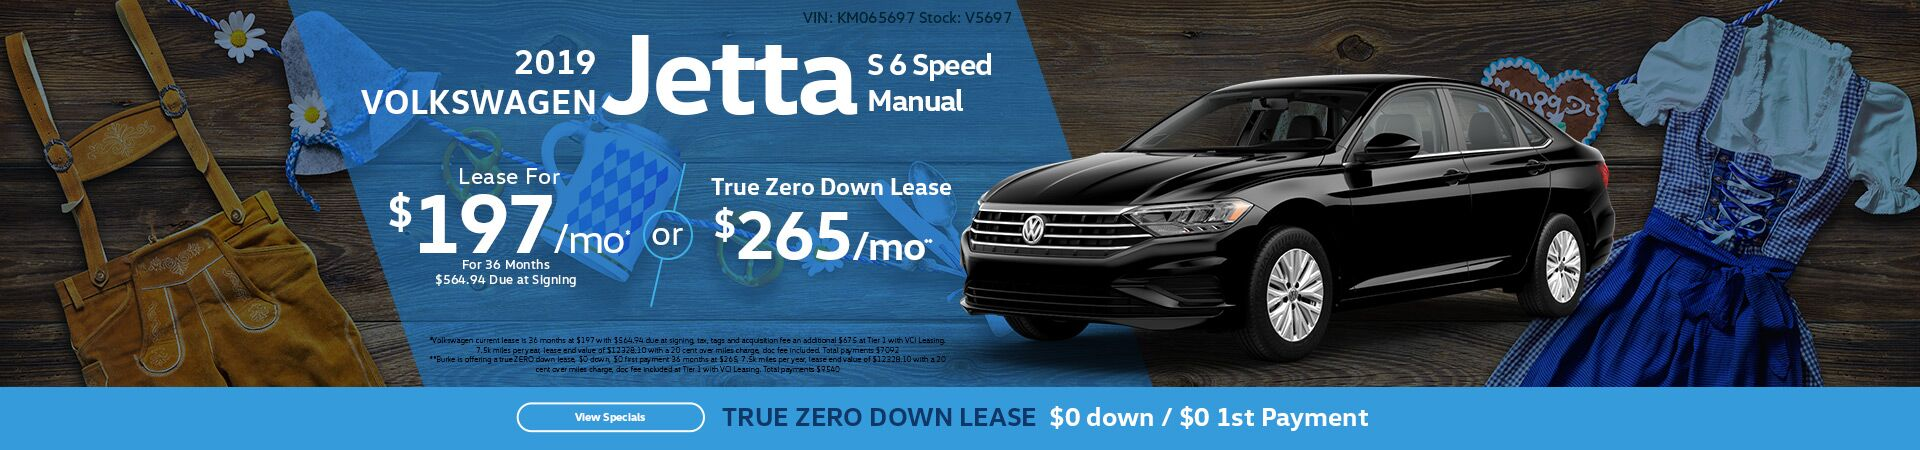 2019 VW Jetta S Manual